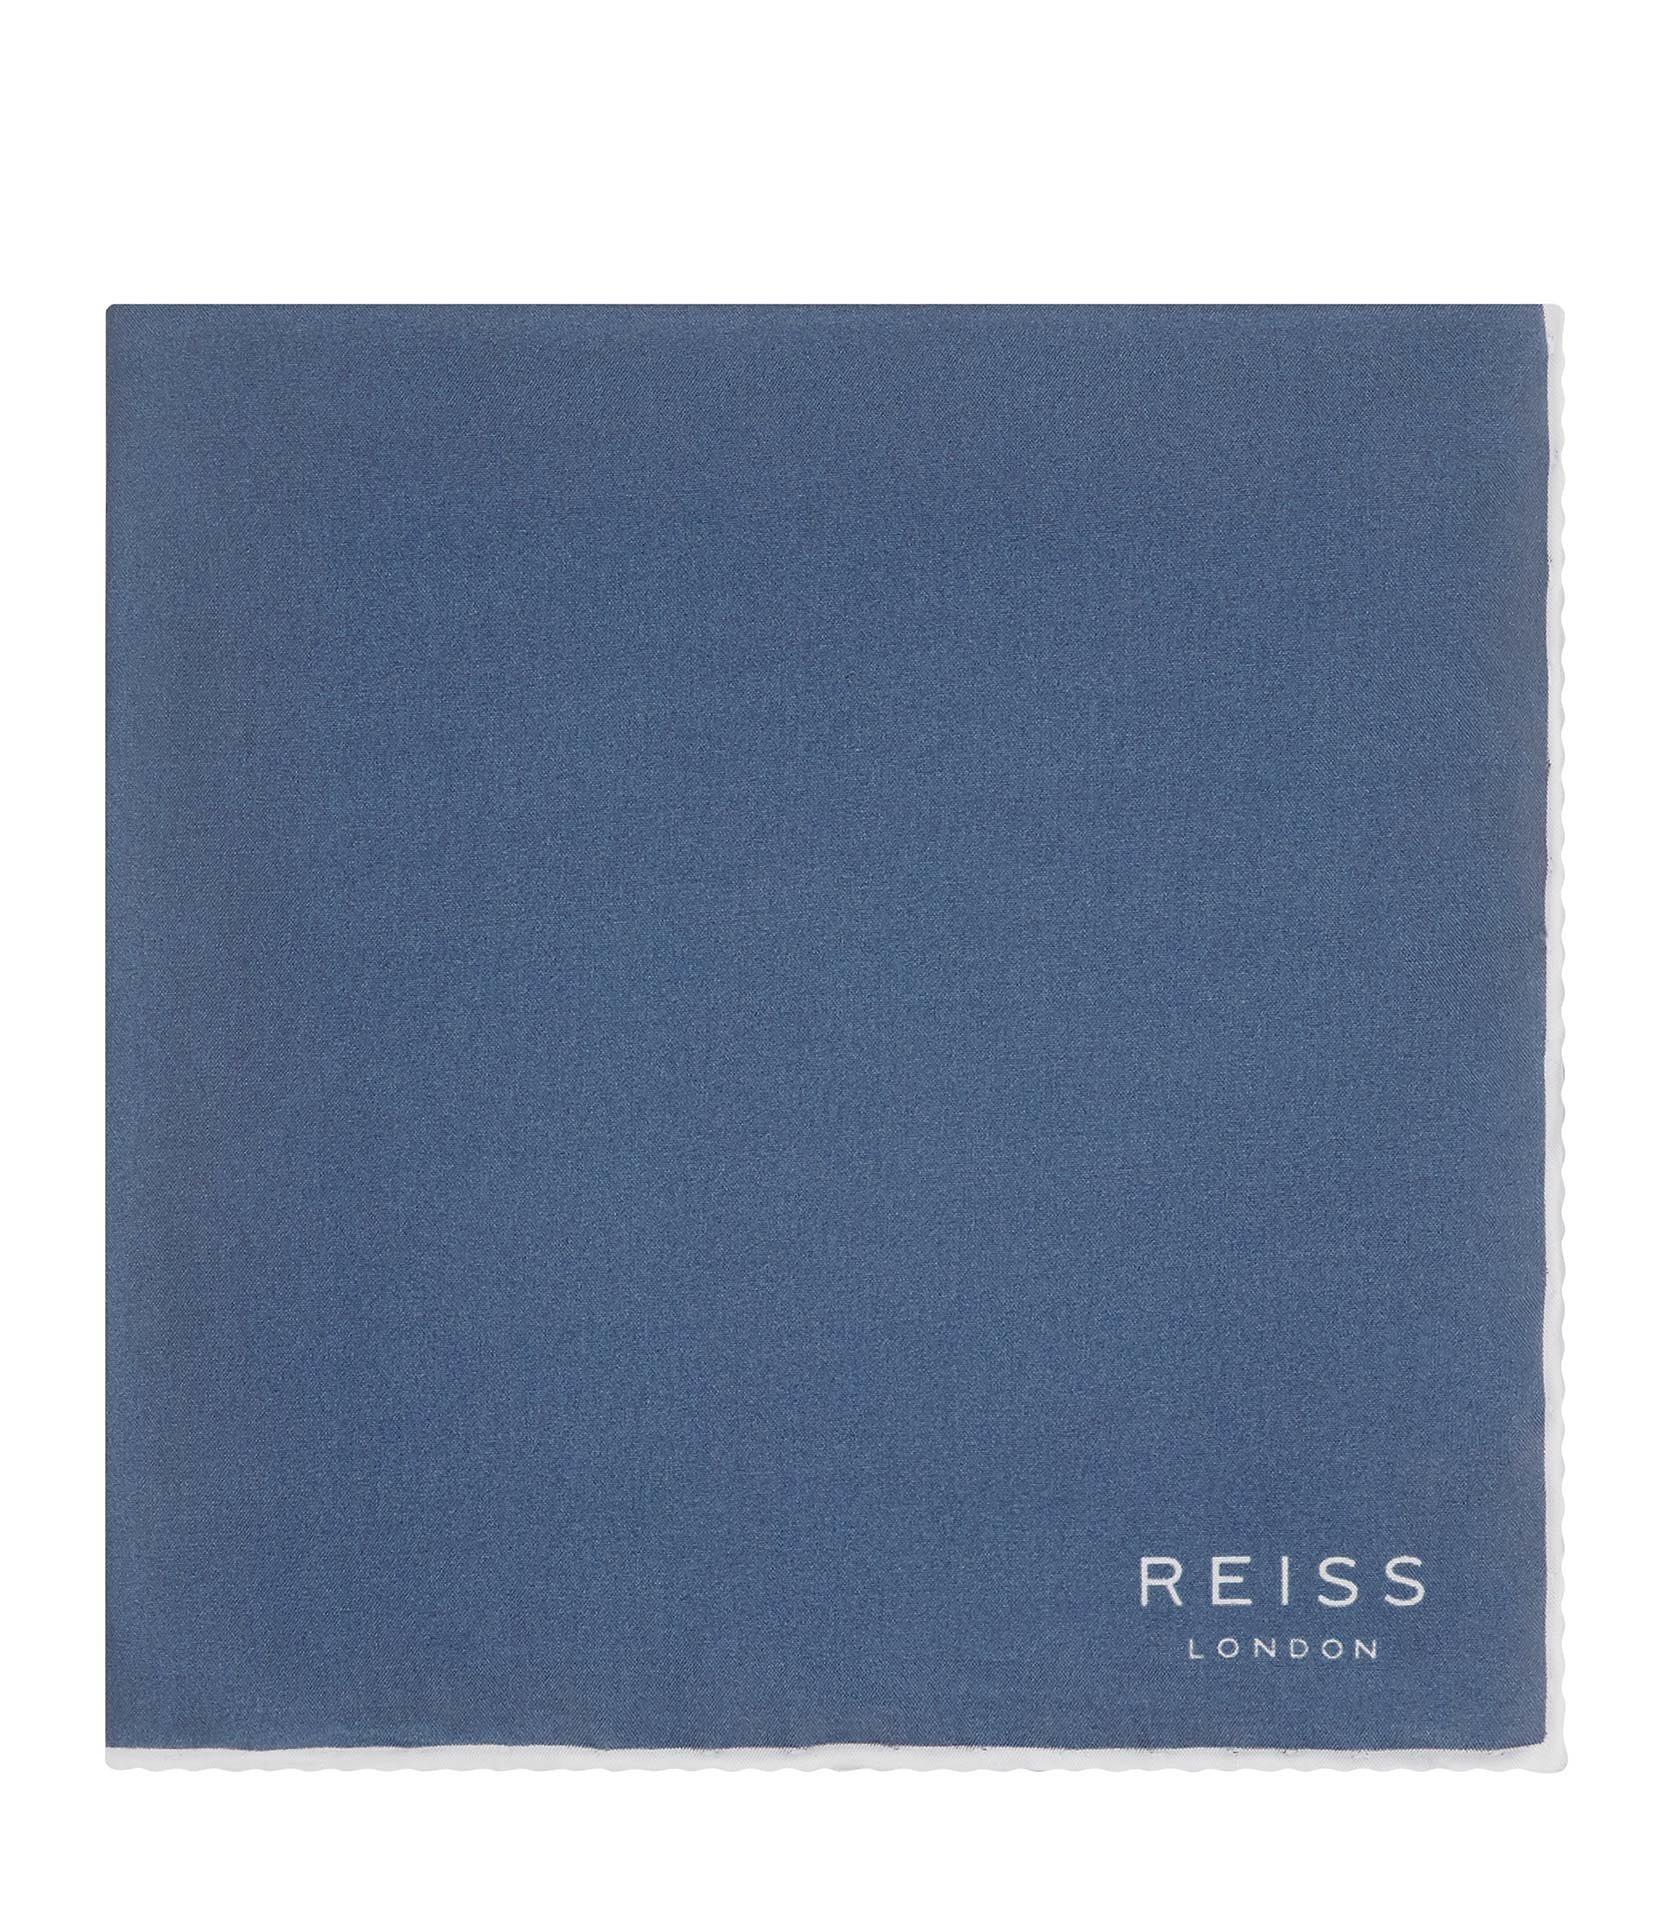 Reiss Airforceblue Horner Silk Piped Pocket Square